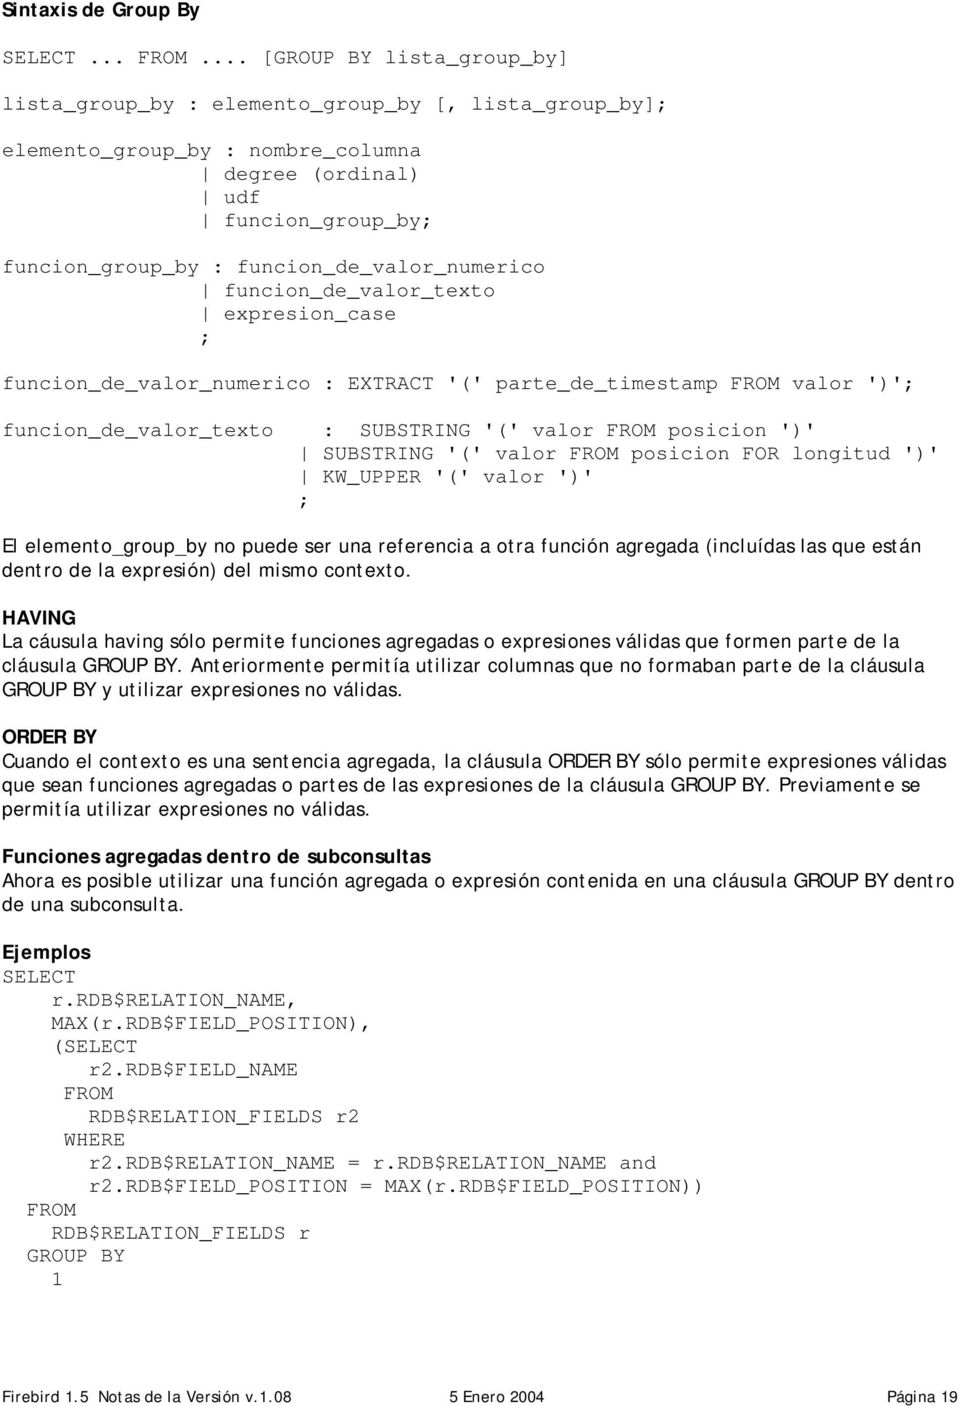 funcion_de_valor_numerico funcion_de_valor_texto expresion_case ; funcion_de_valor_numerico : EXTRACT '(' parte_de_timestamp FROM valor ')'; funcion_de_valor_texto : SUBSTRING '(' valor FROM posicion